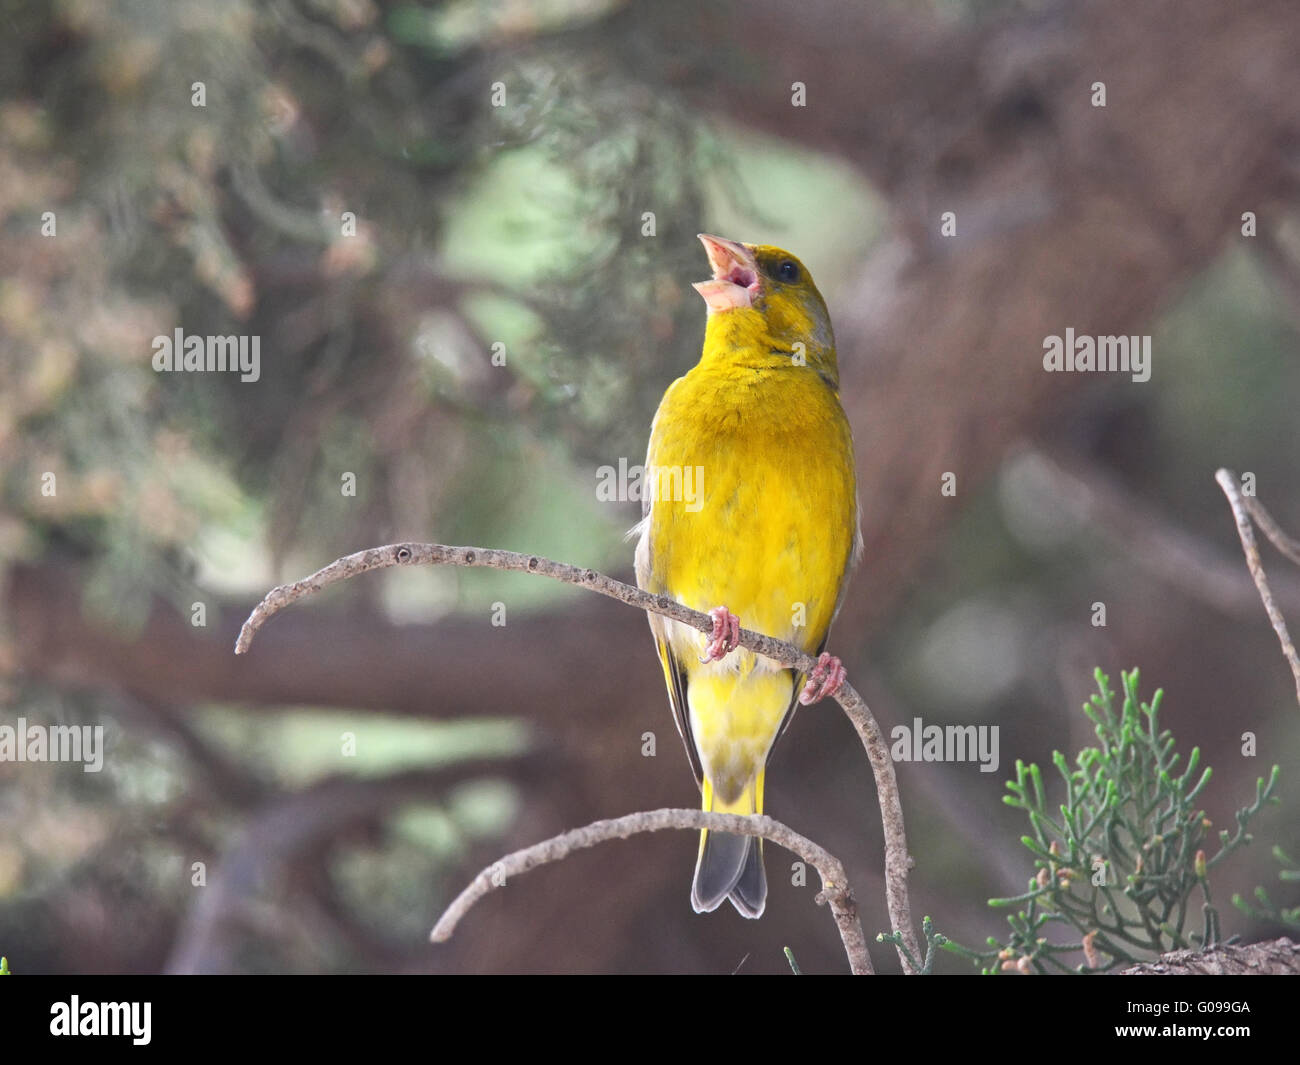 Green-finch sings  in the forest - Stock Image